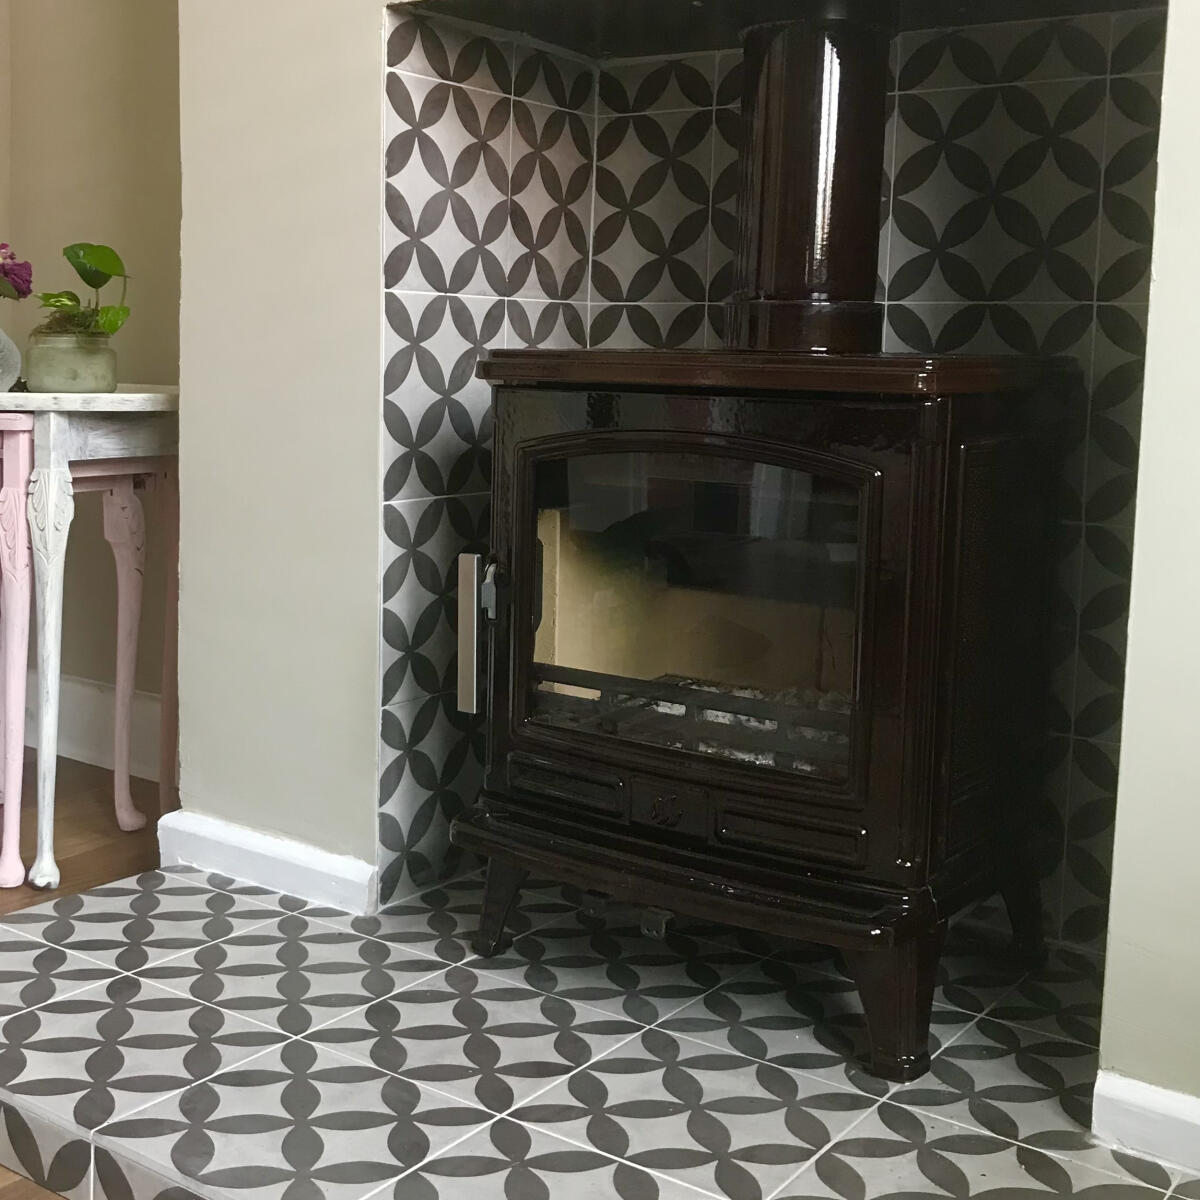 Manor House Fireplaces 5 star review on 19th June 2021